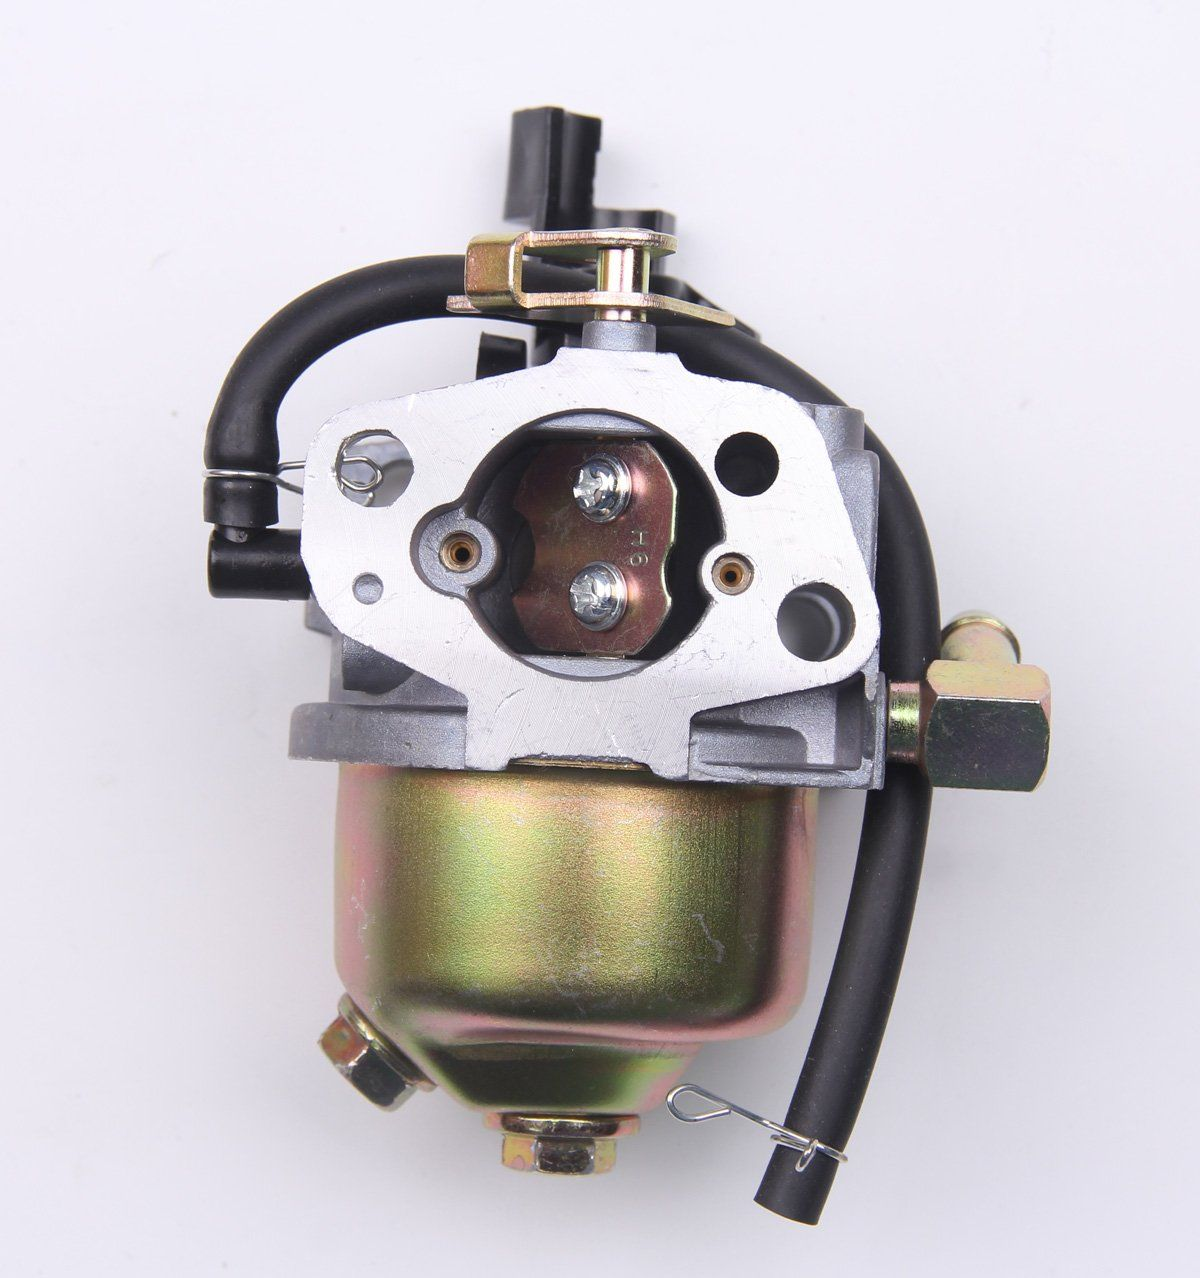 hight resolution of new carburetor with gaskets primer and fuel filter for troy bilt mtd cub cadet snow blower 95114026a 95114027a 95110638a see this great product